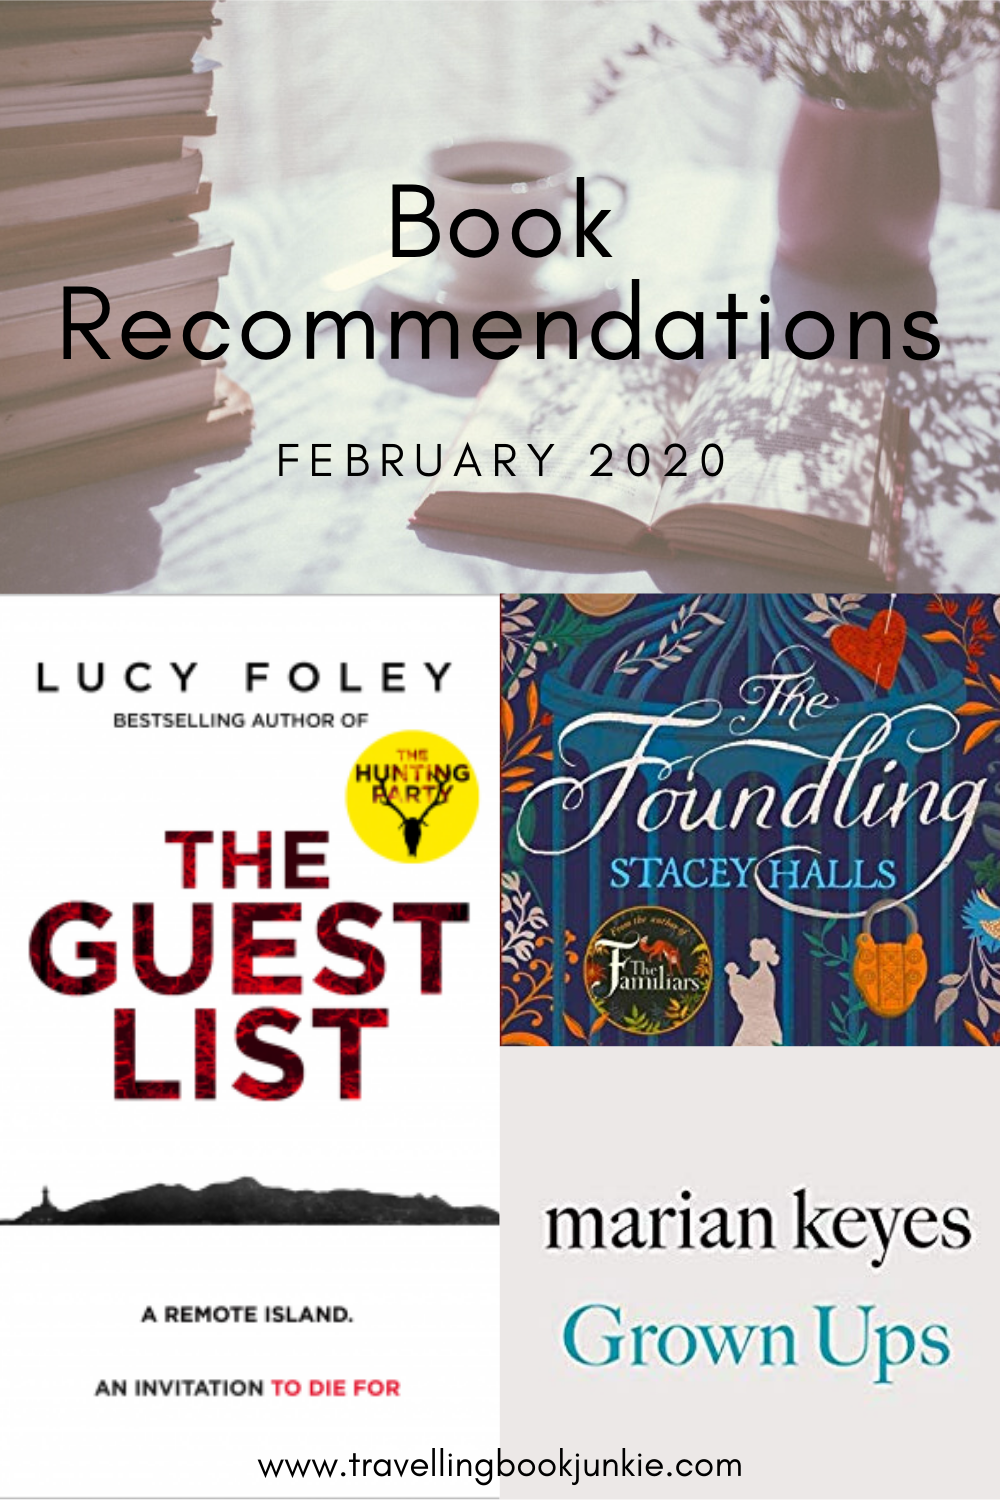 Book recommendations for February 2020 including The Guest List, The Foundling, and Grown Ups via @tbookjunkie